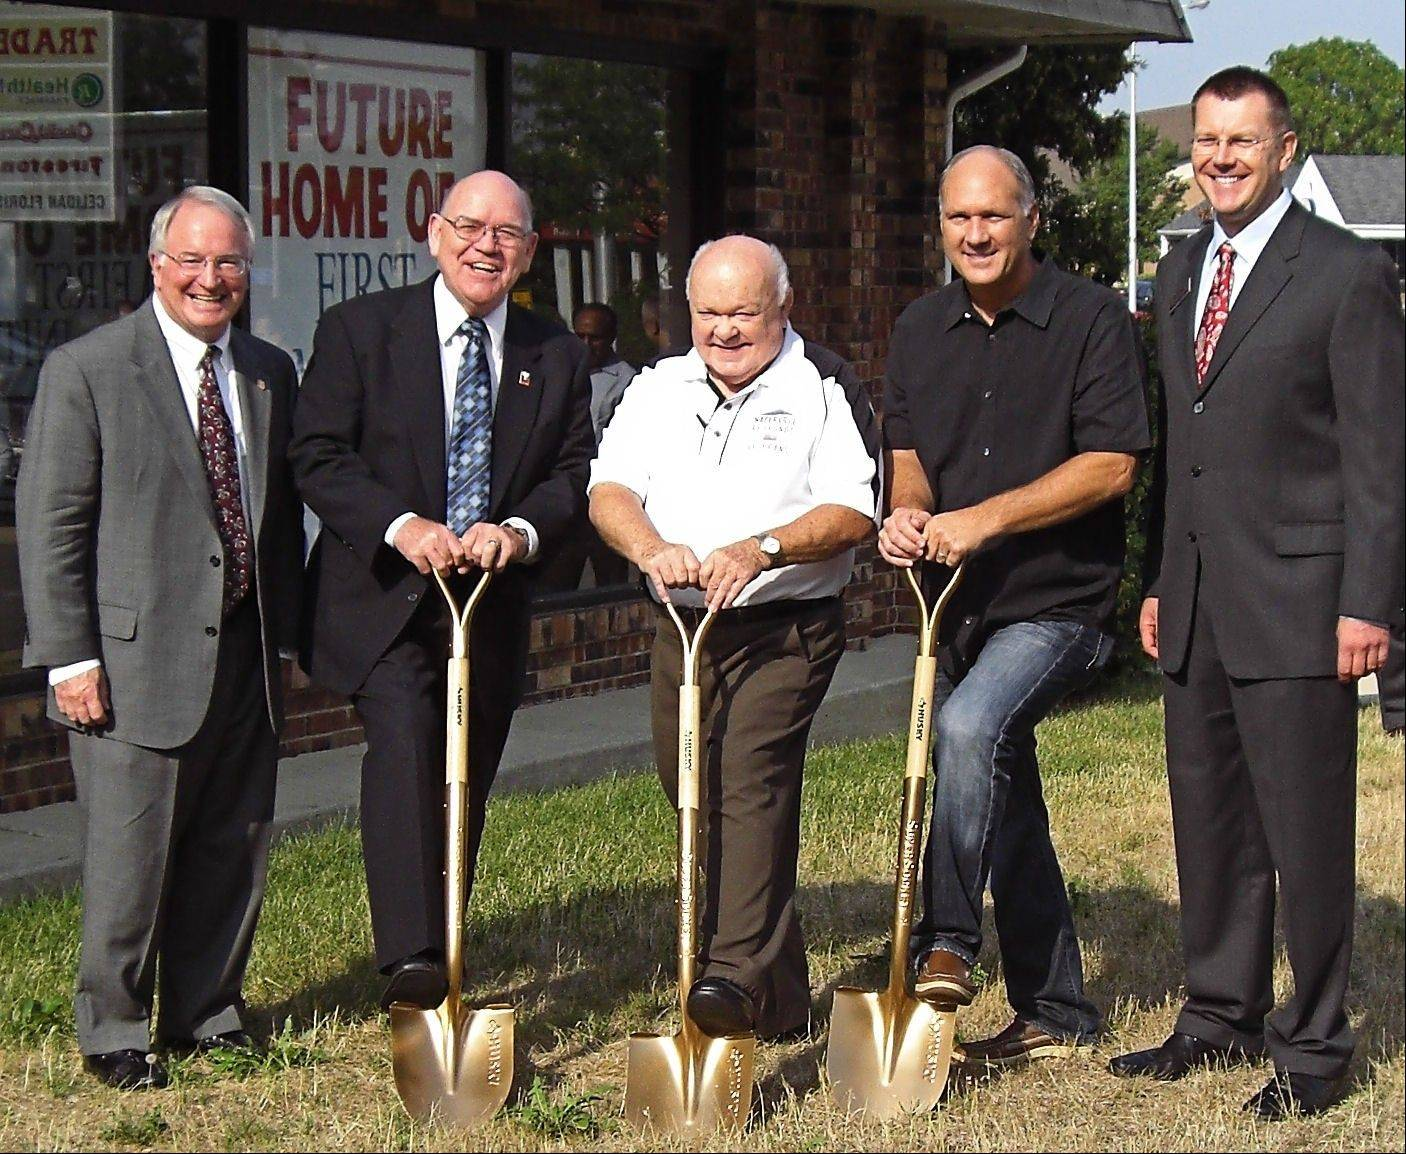 J. Patrick Benton, Market President of First Community Bank -- Naperville, from left, Doug Krause, Naperville councilman; Naperville Mayor A. George Pradel; Steve Chirico, Naperville councilman; and Scott Wehrli, member of the bank's board, break ground on the new site.